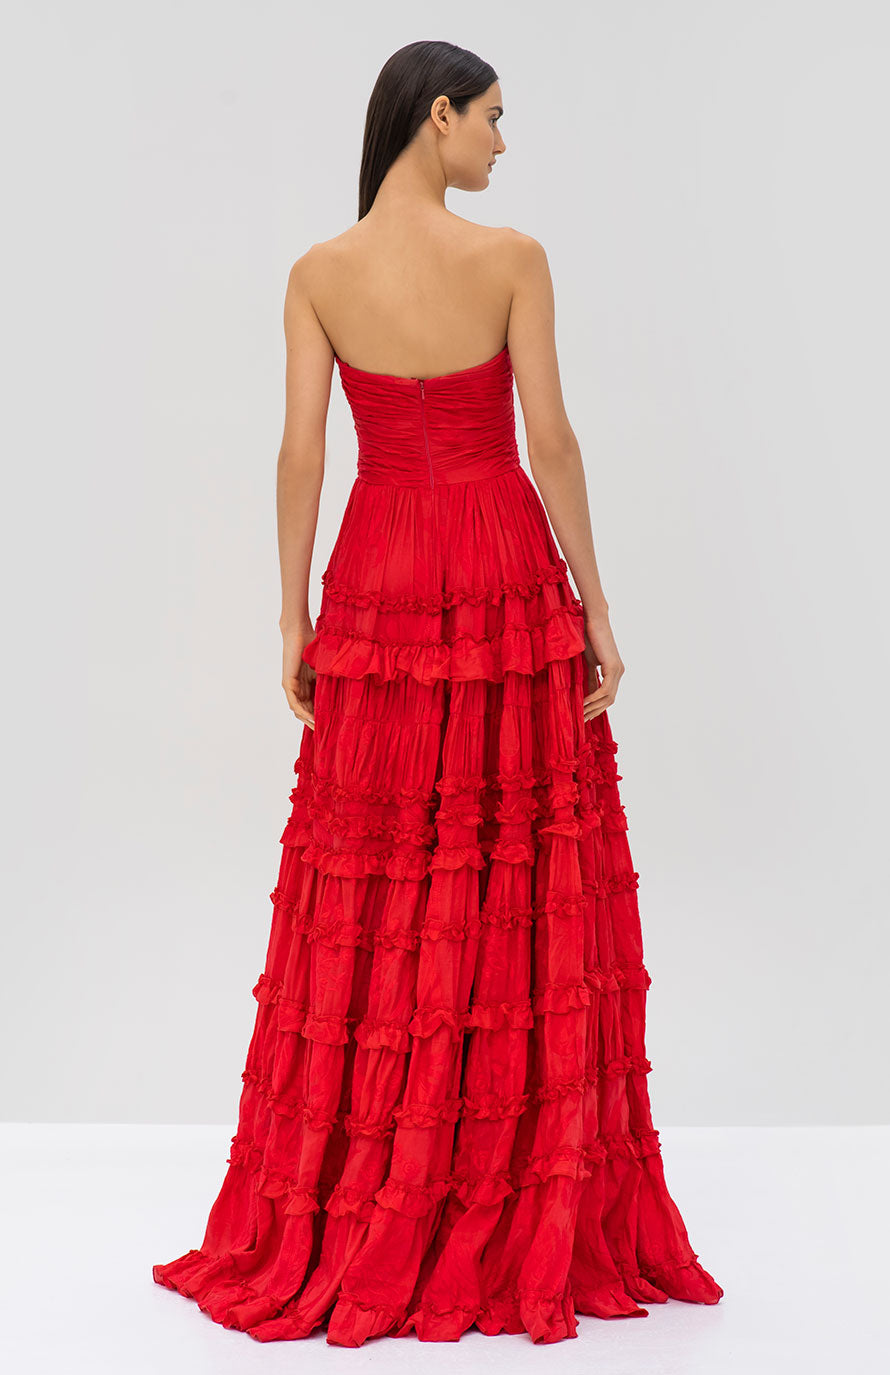 Alexis Allora Gown in Red Azalea from the Pre Fall 2019 Ready To Wear Collection - Rear View